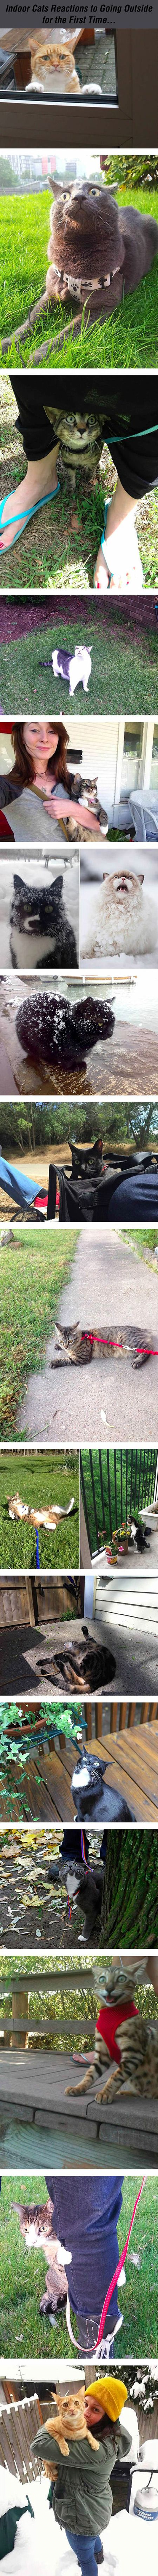 Photographers capture the reactions of indoor cats going outside for the first time.